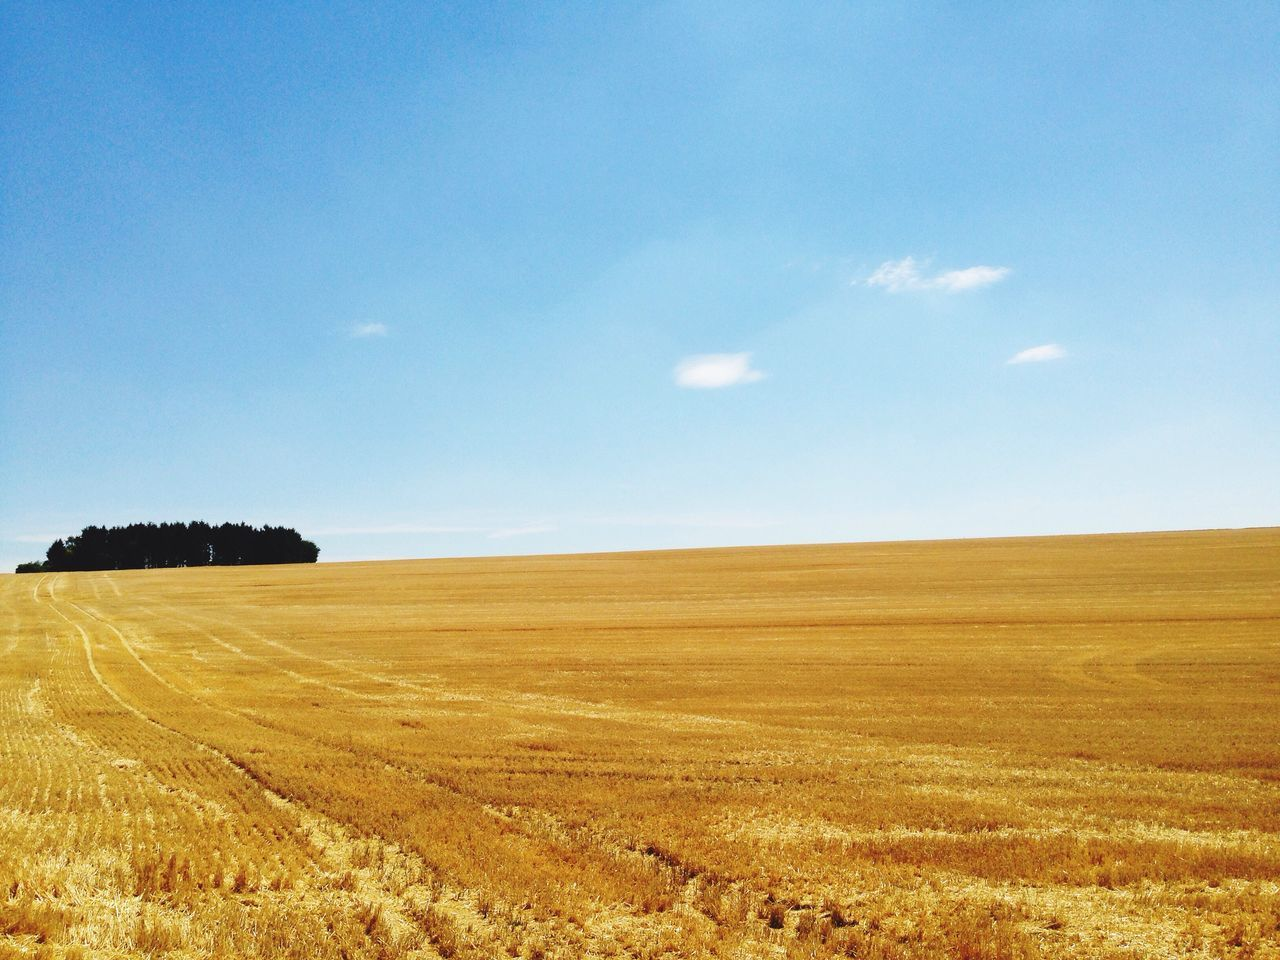 Beautiful stock photos of france, Brown, Horizontal Image, Vibrant Color, arid climate